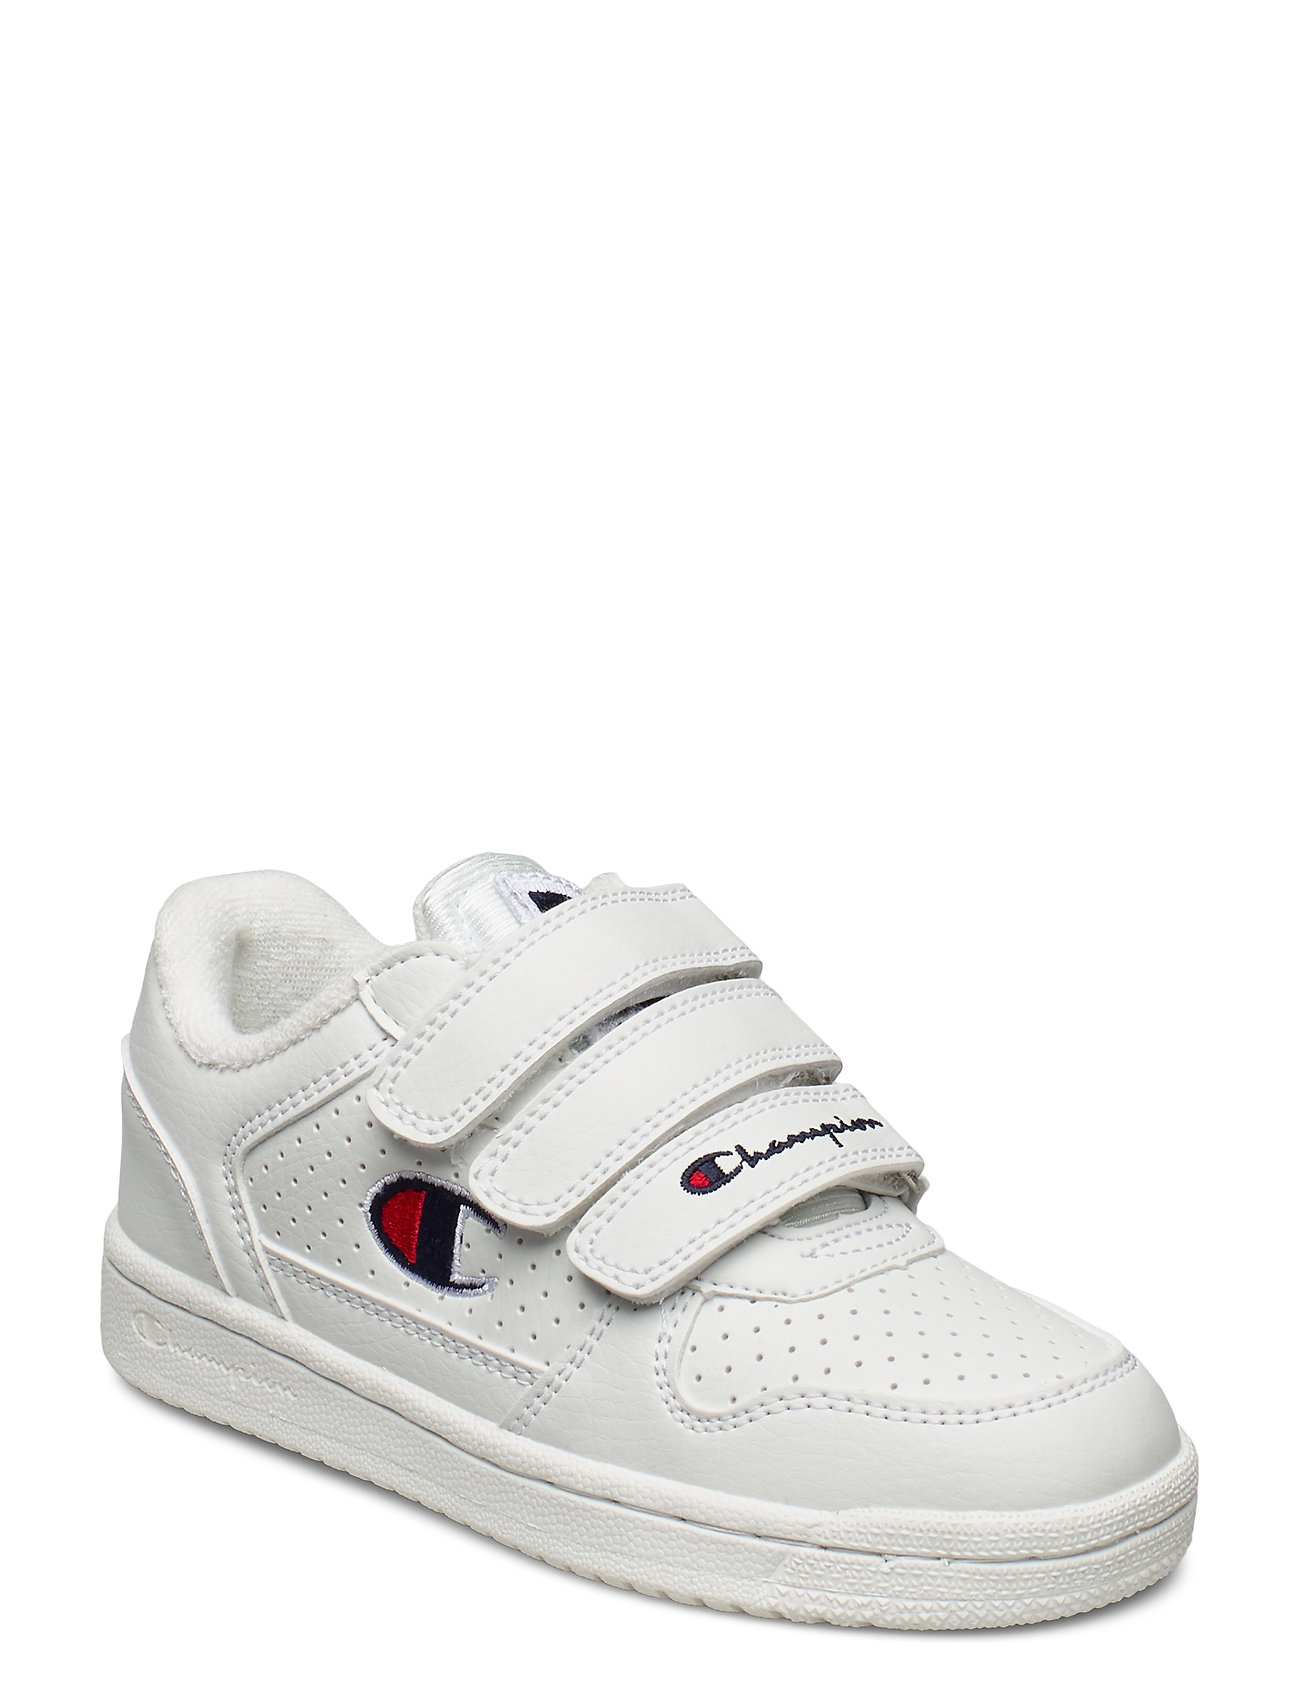 Image of Low Cut Shoe Chicago Low B Ps Sneakers Sko Hvid Champion (3406313377)